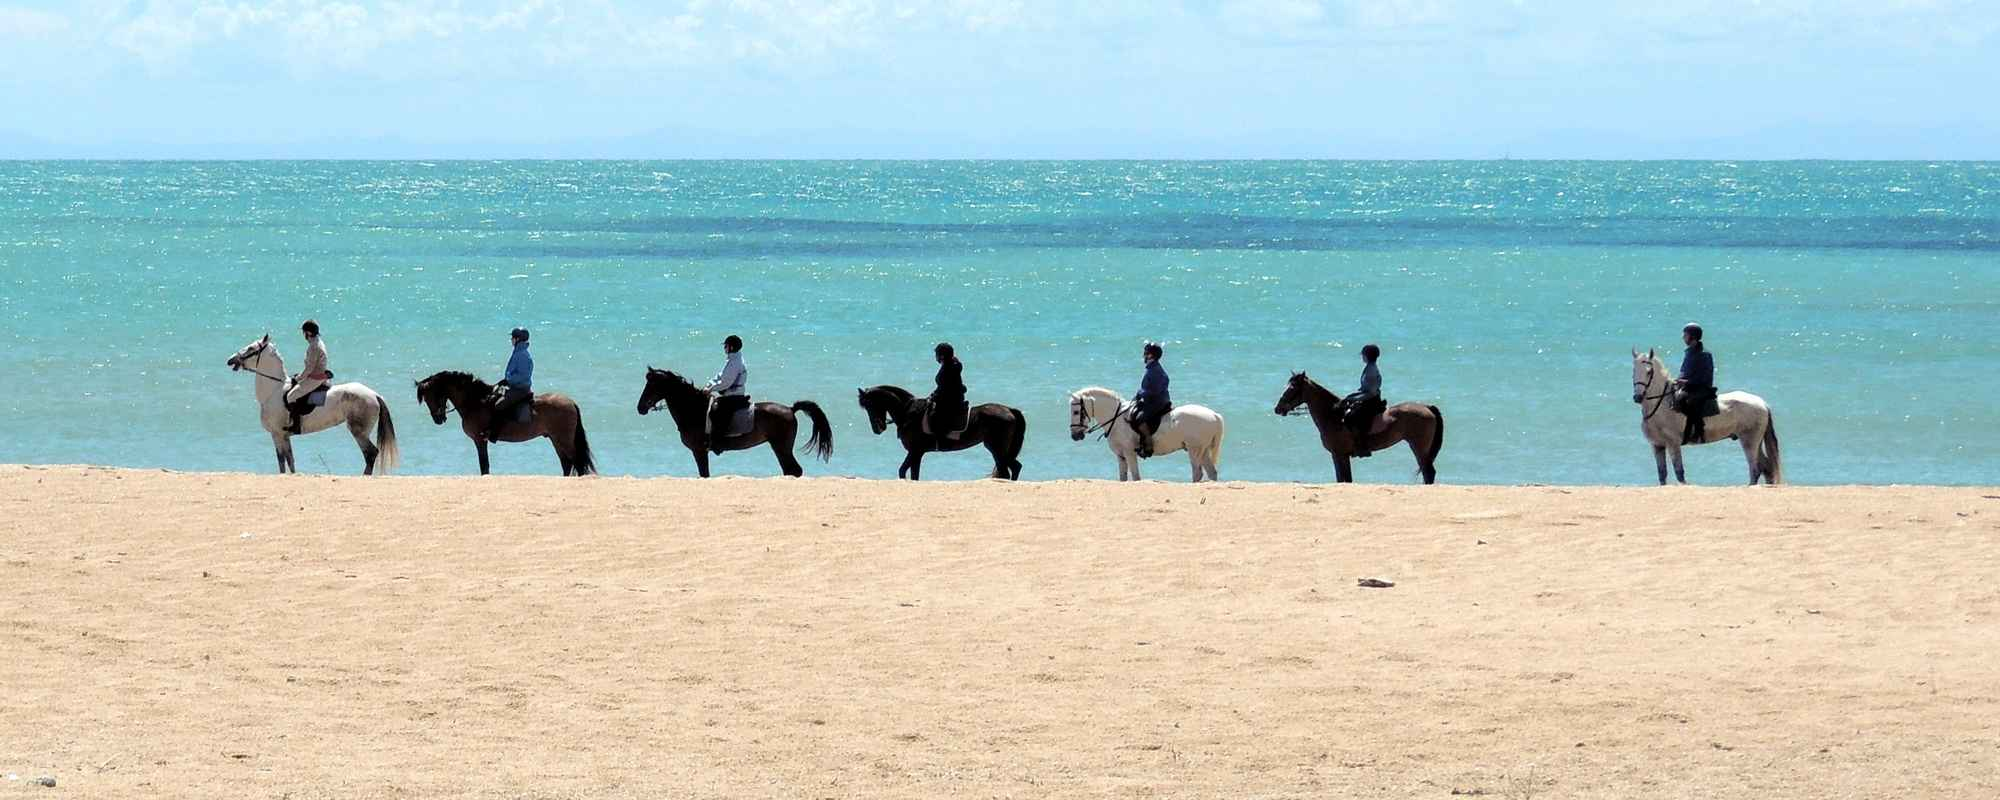 Horse riding holiday in unspoilt Andalusia for proficient riders.